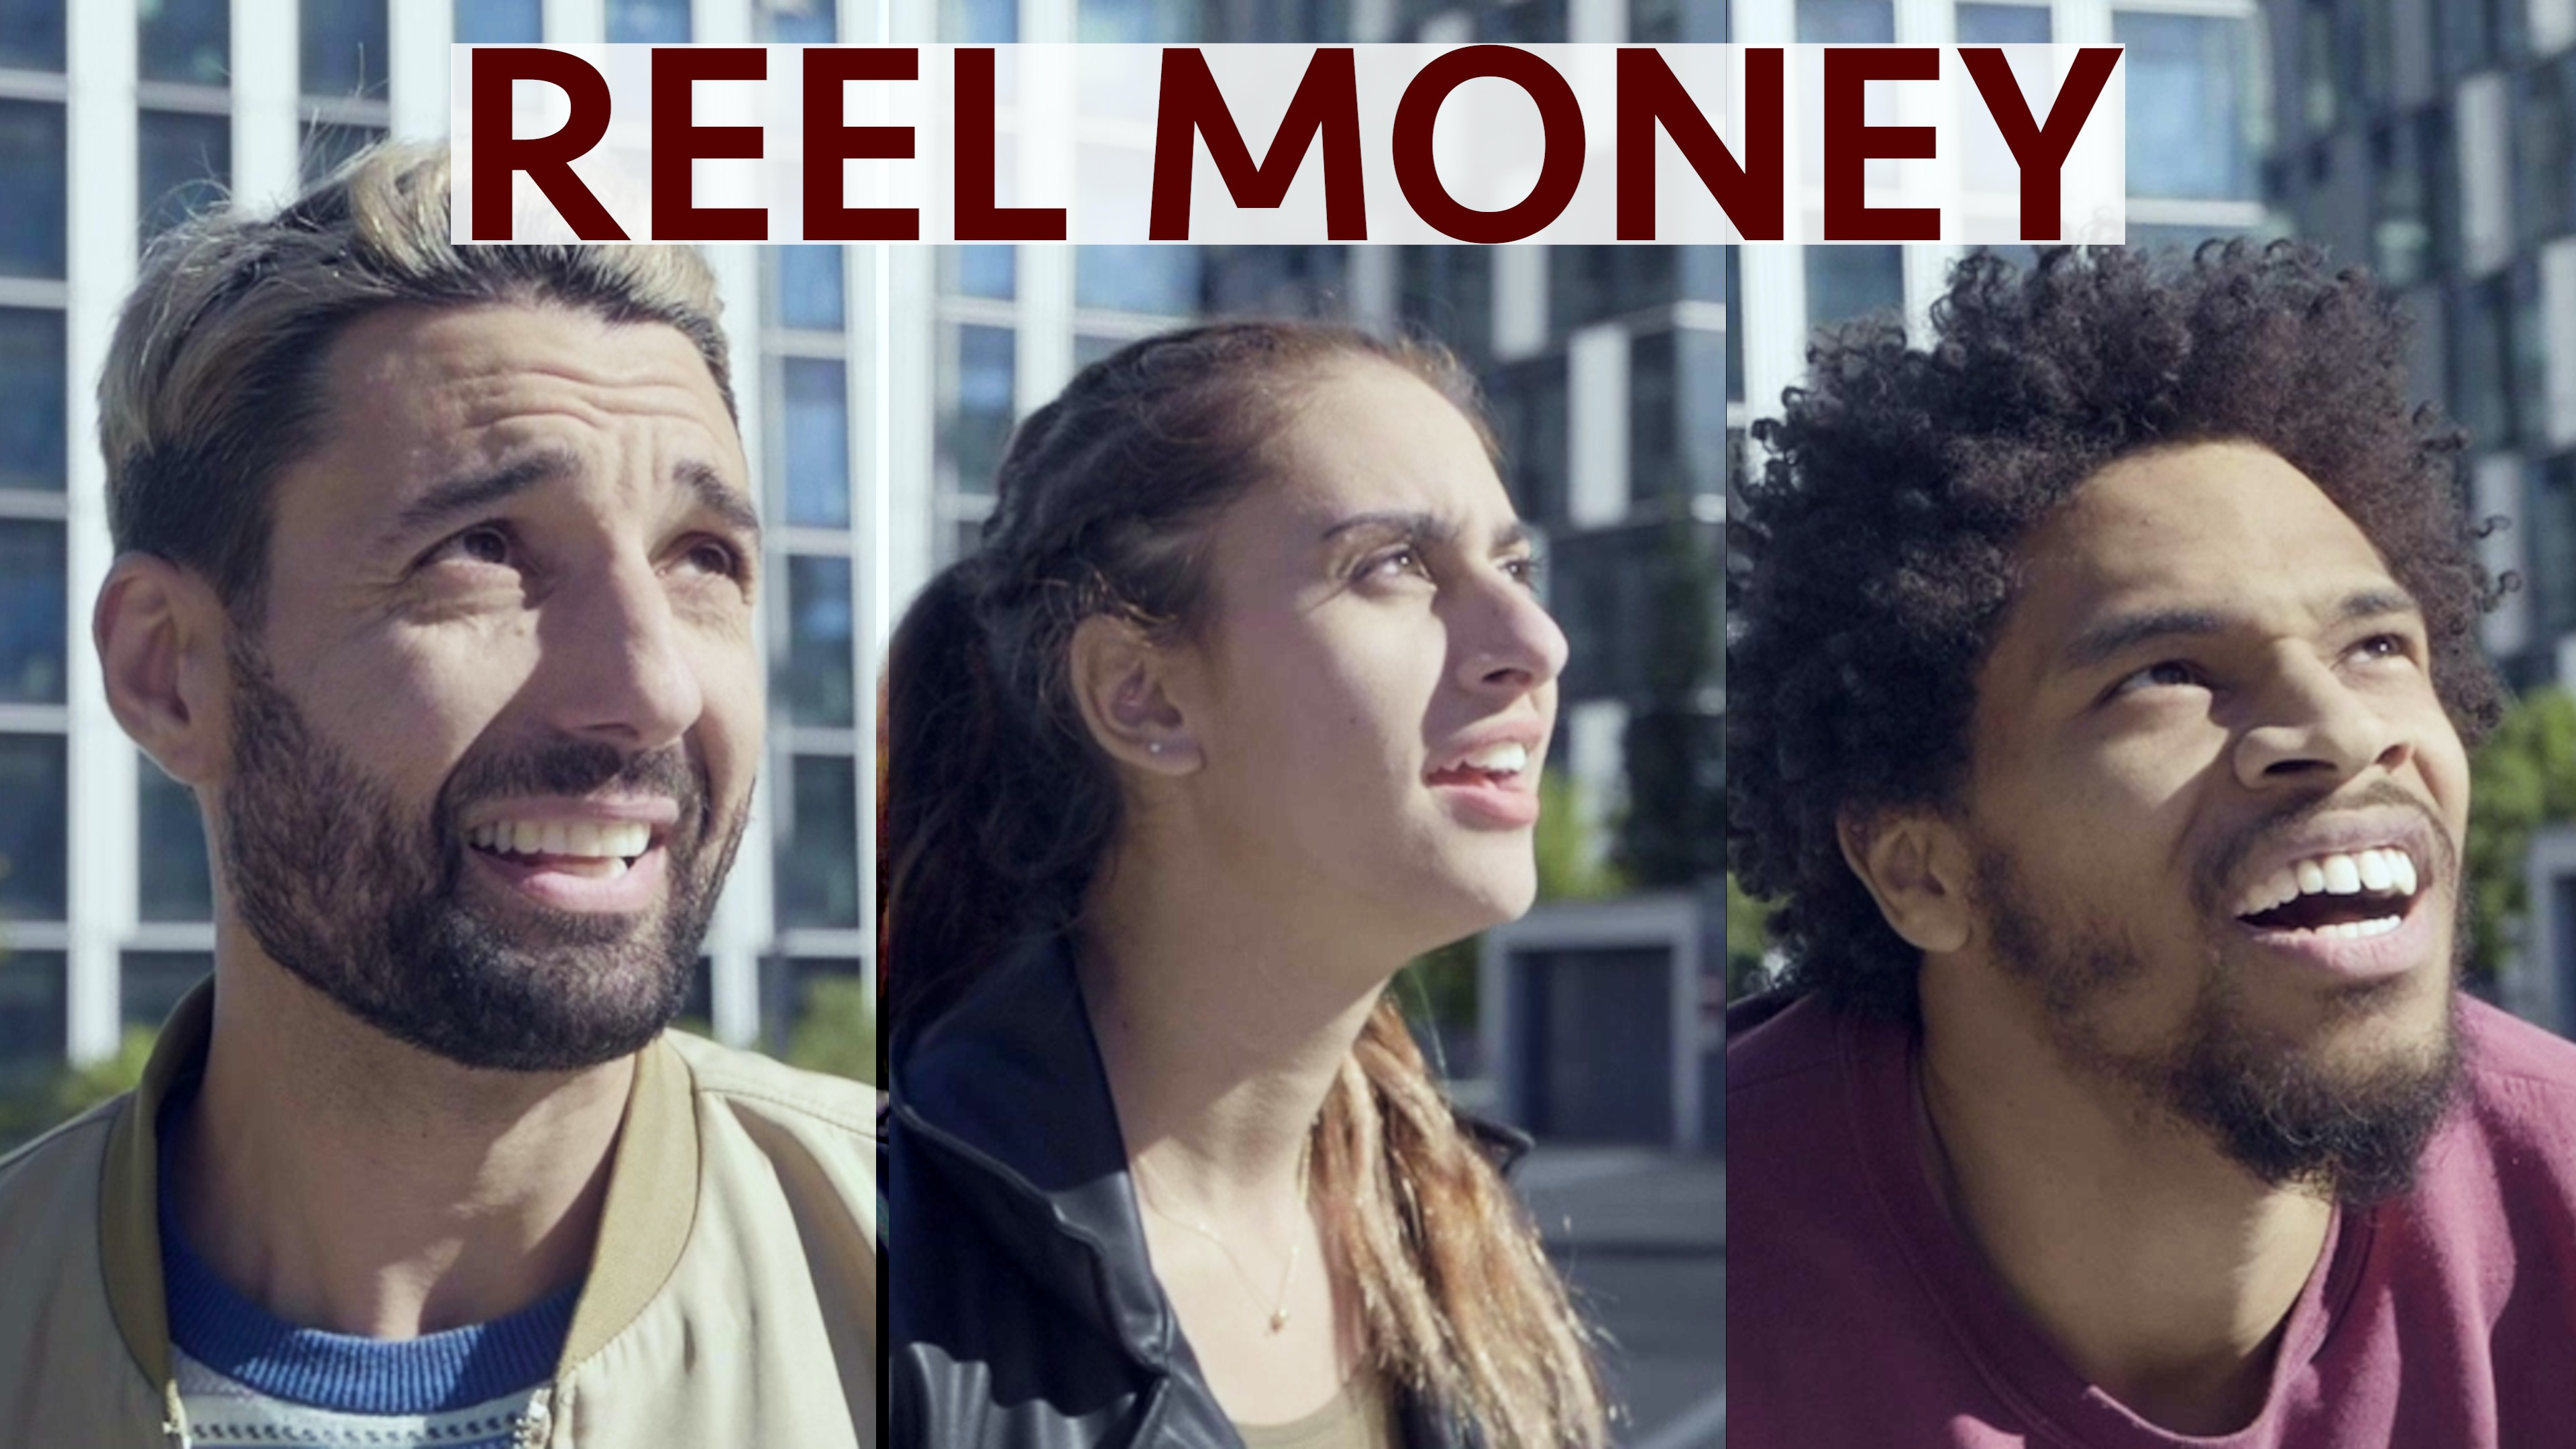 Reel Money - Short Film - My RØDE Reel 2020